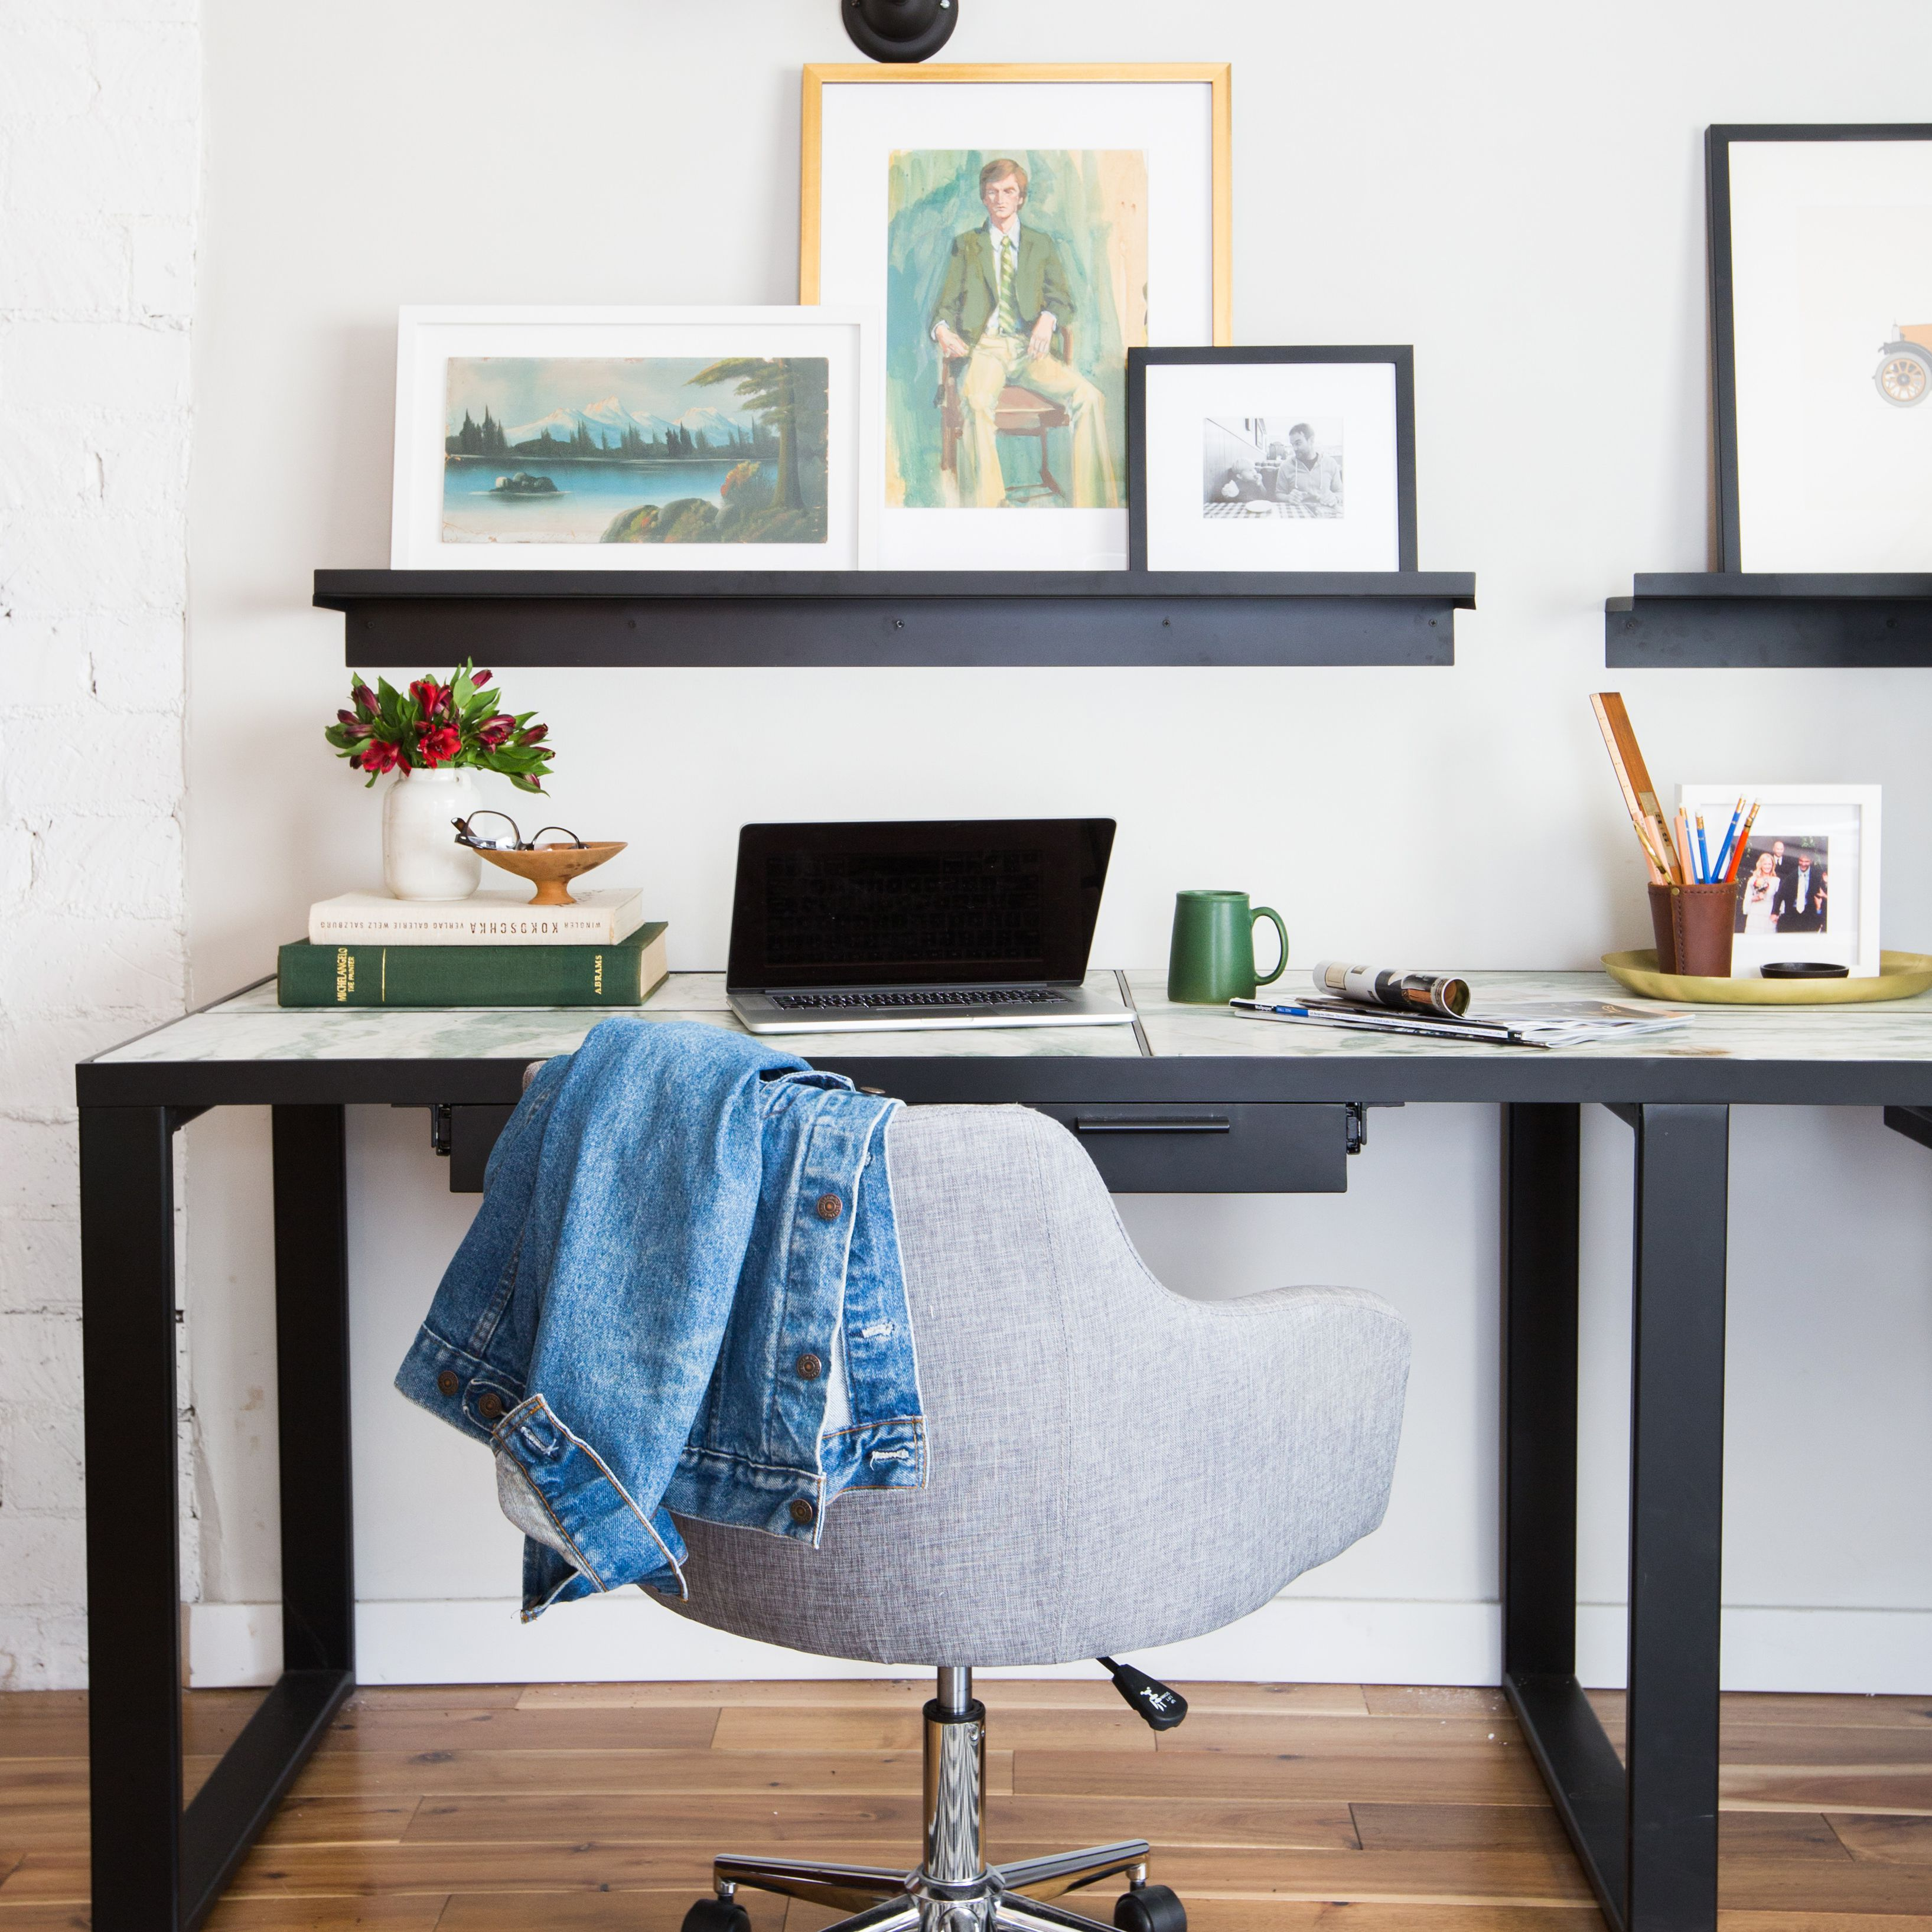 5 Easy Ways to Organize an Office to Make You as Efficient as Possible